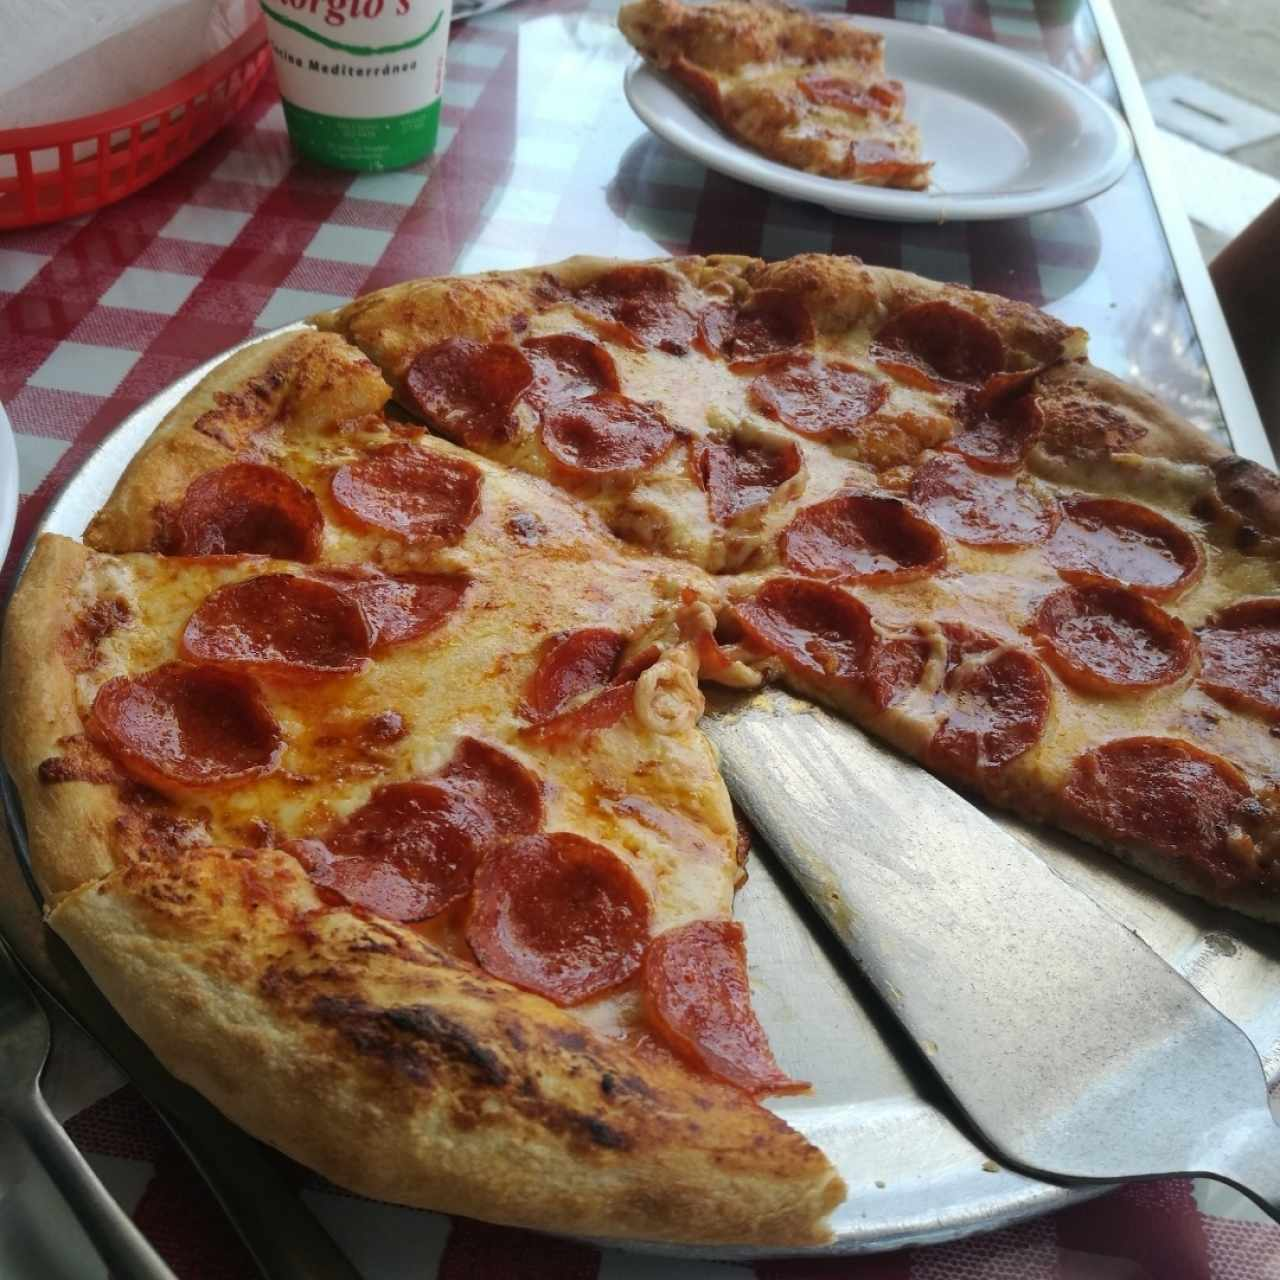 Pizza de pepperoni (regular)